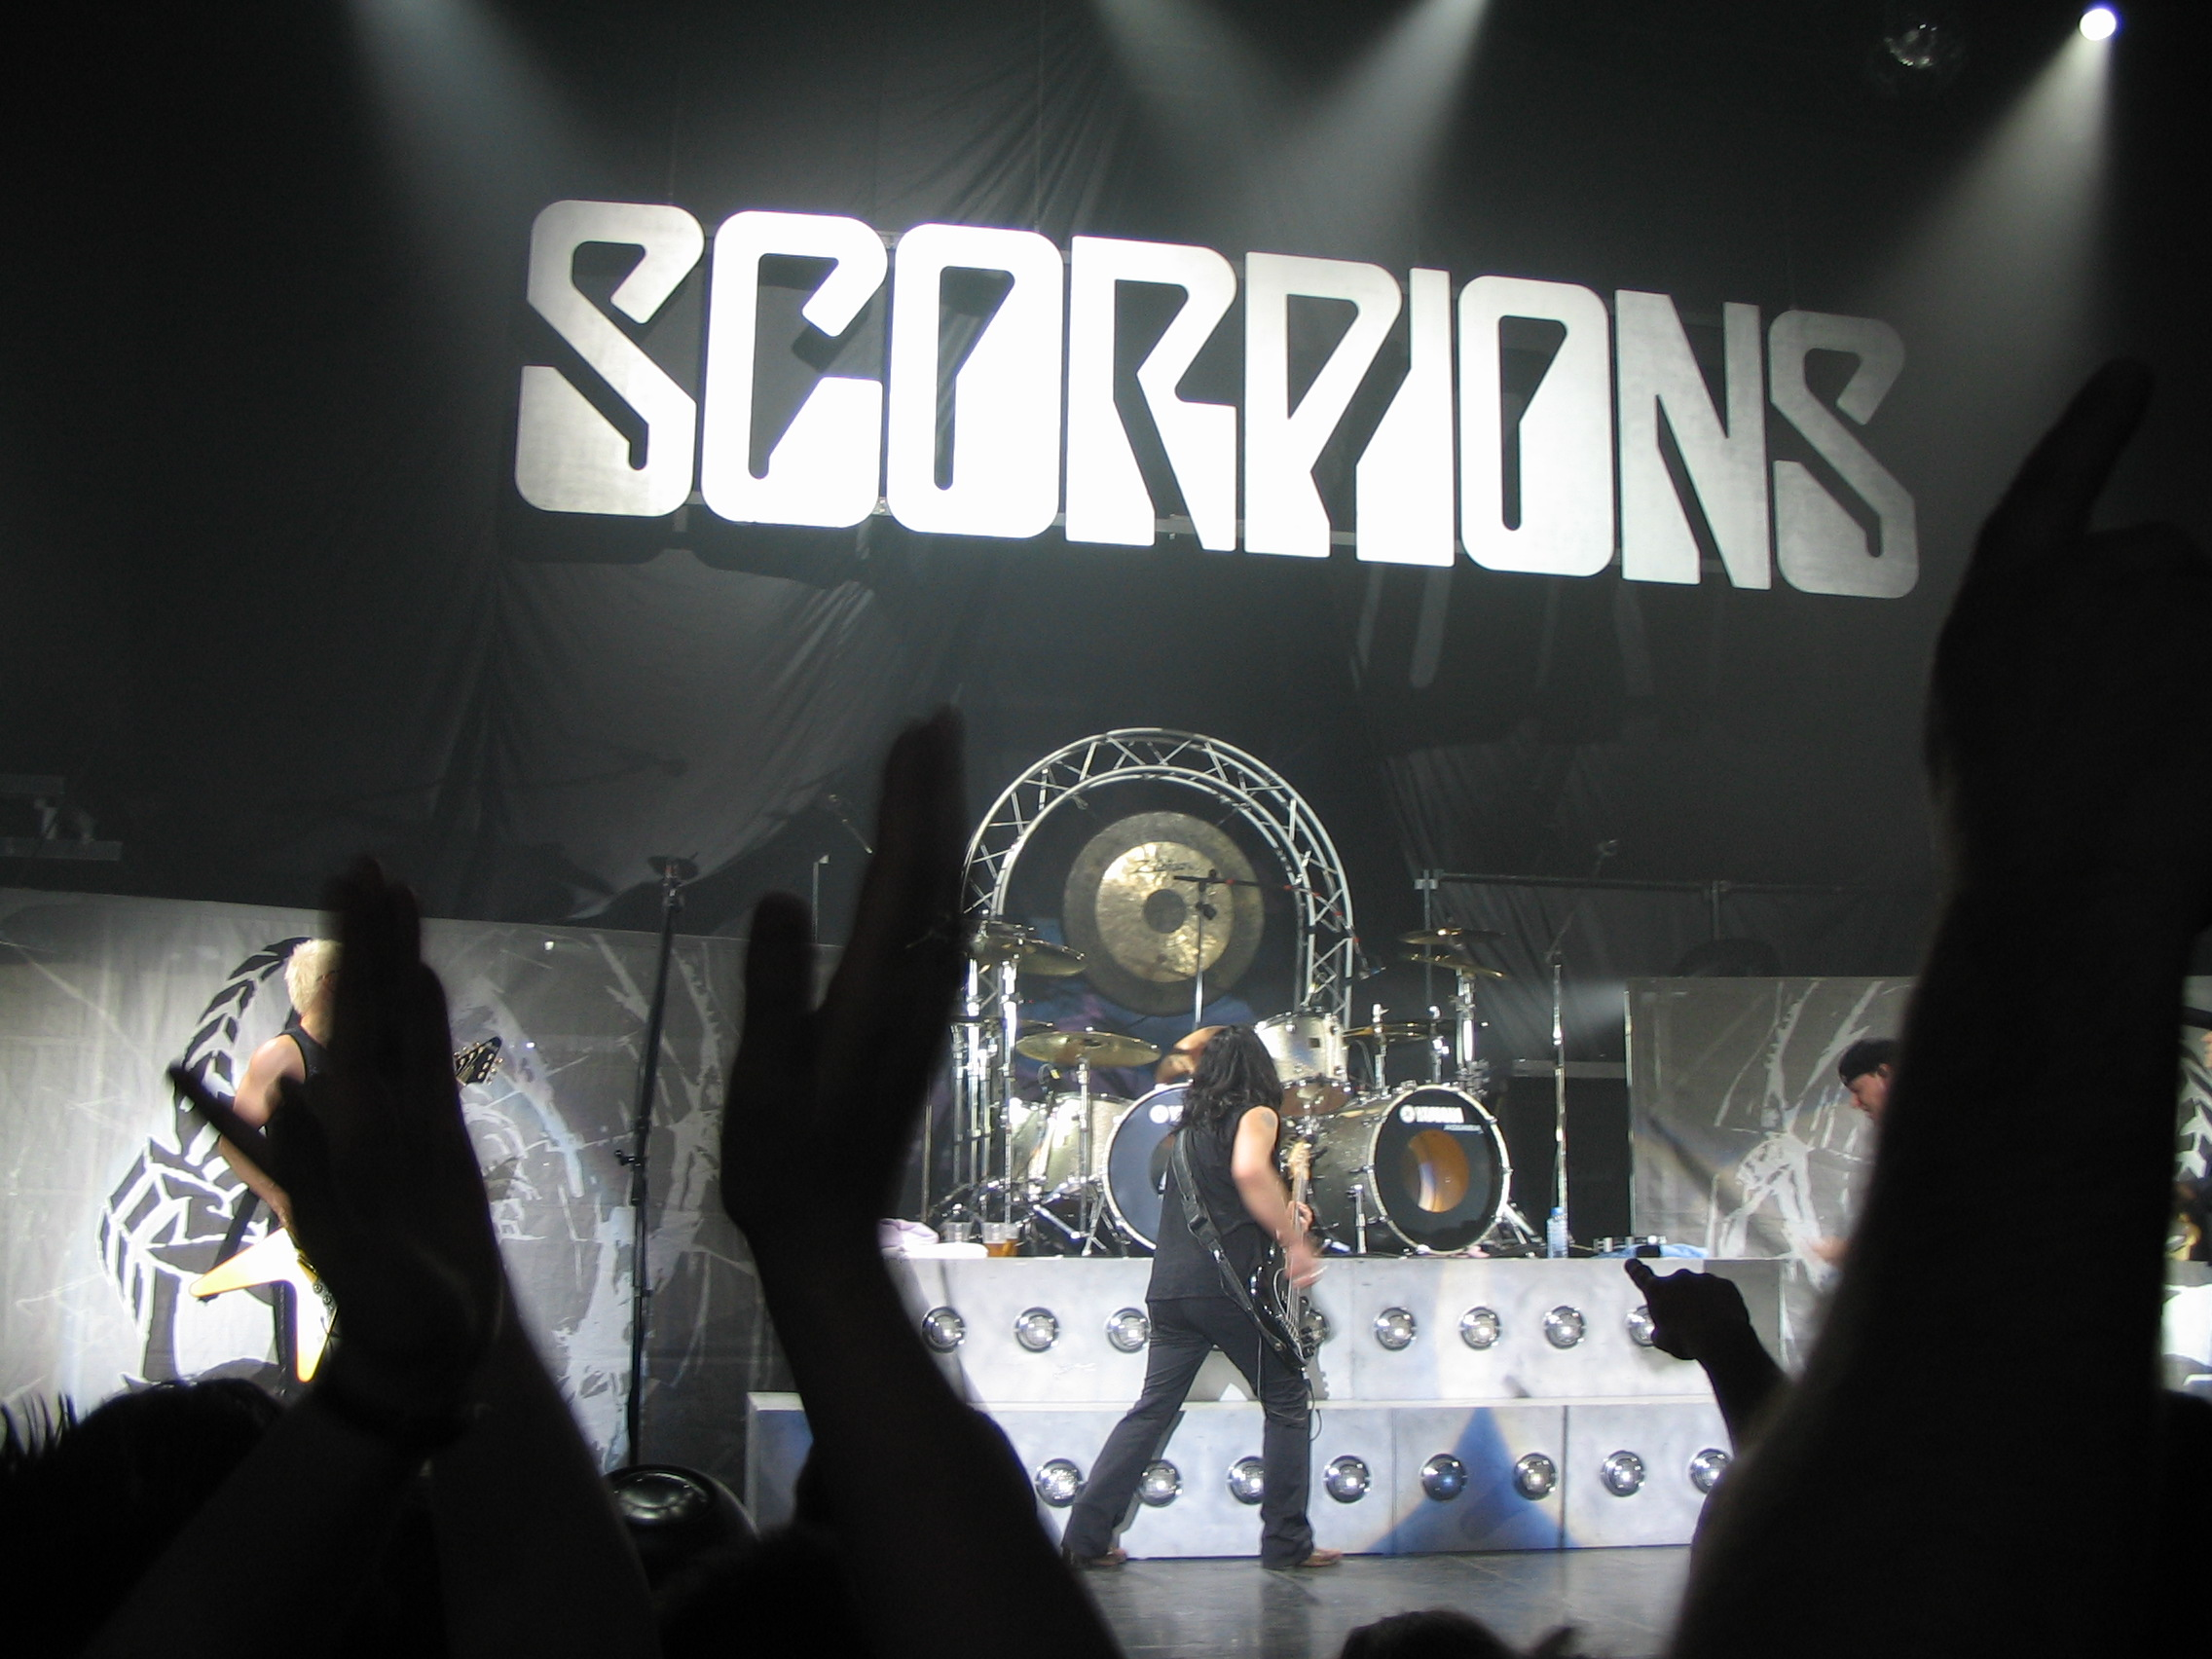 https://i2.wp.com/upload.wikimedia.org/wikipedia/commons/2/2f/Scorpions-29.jpg